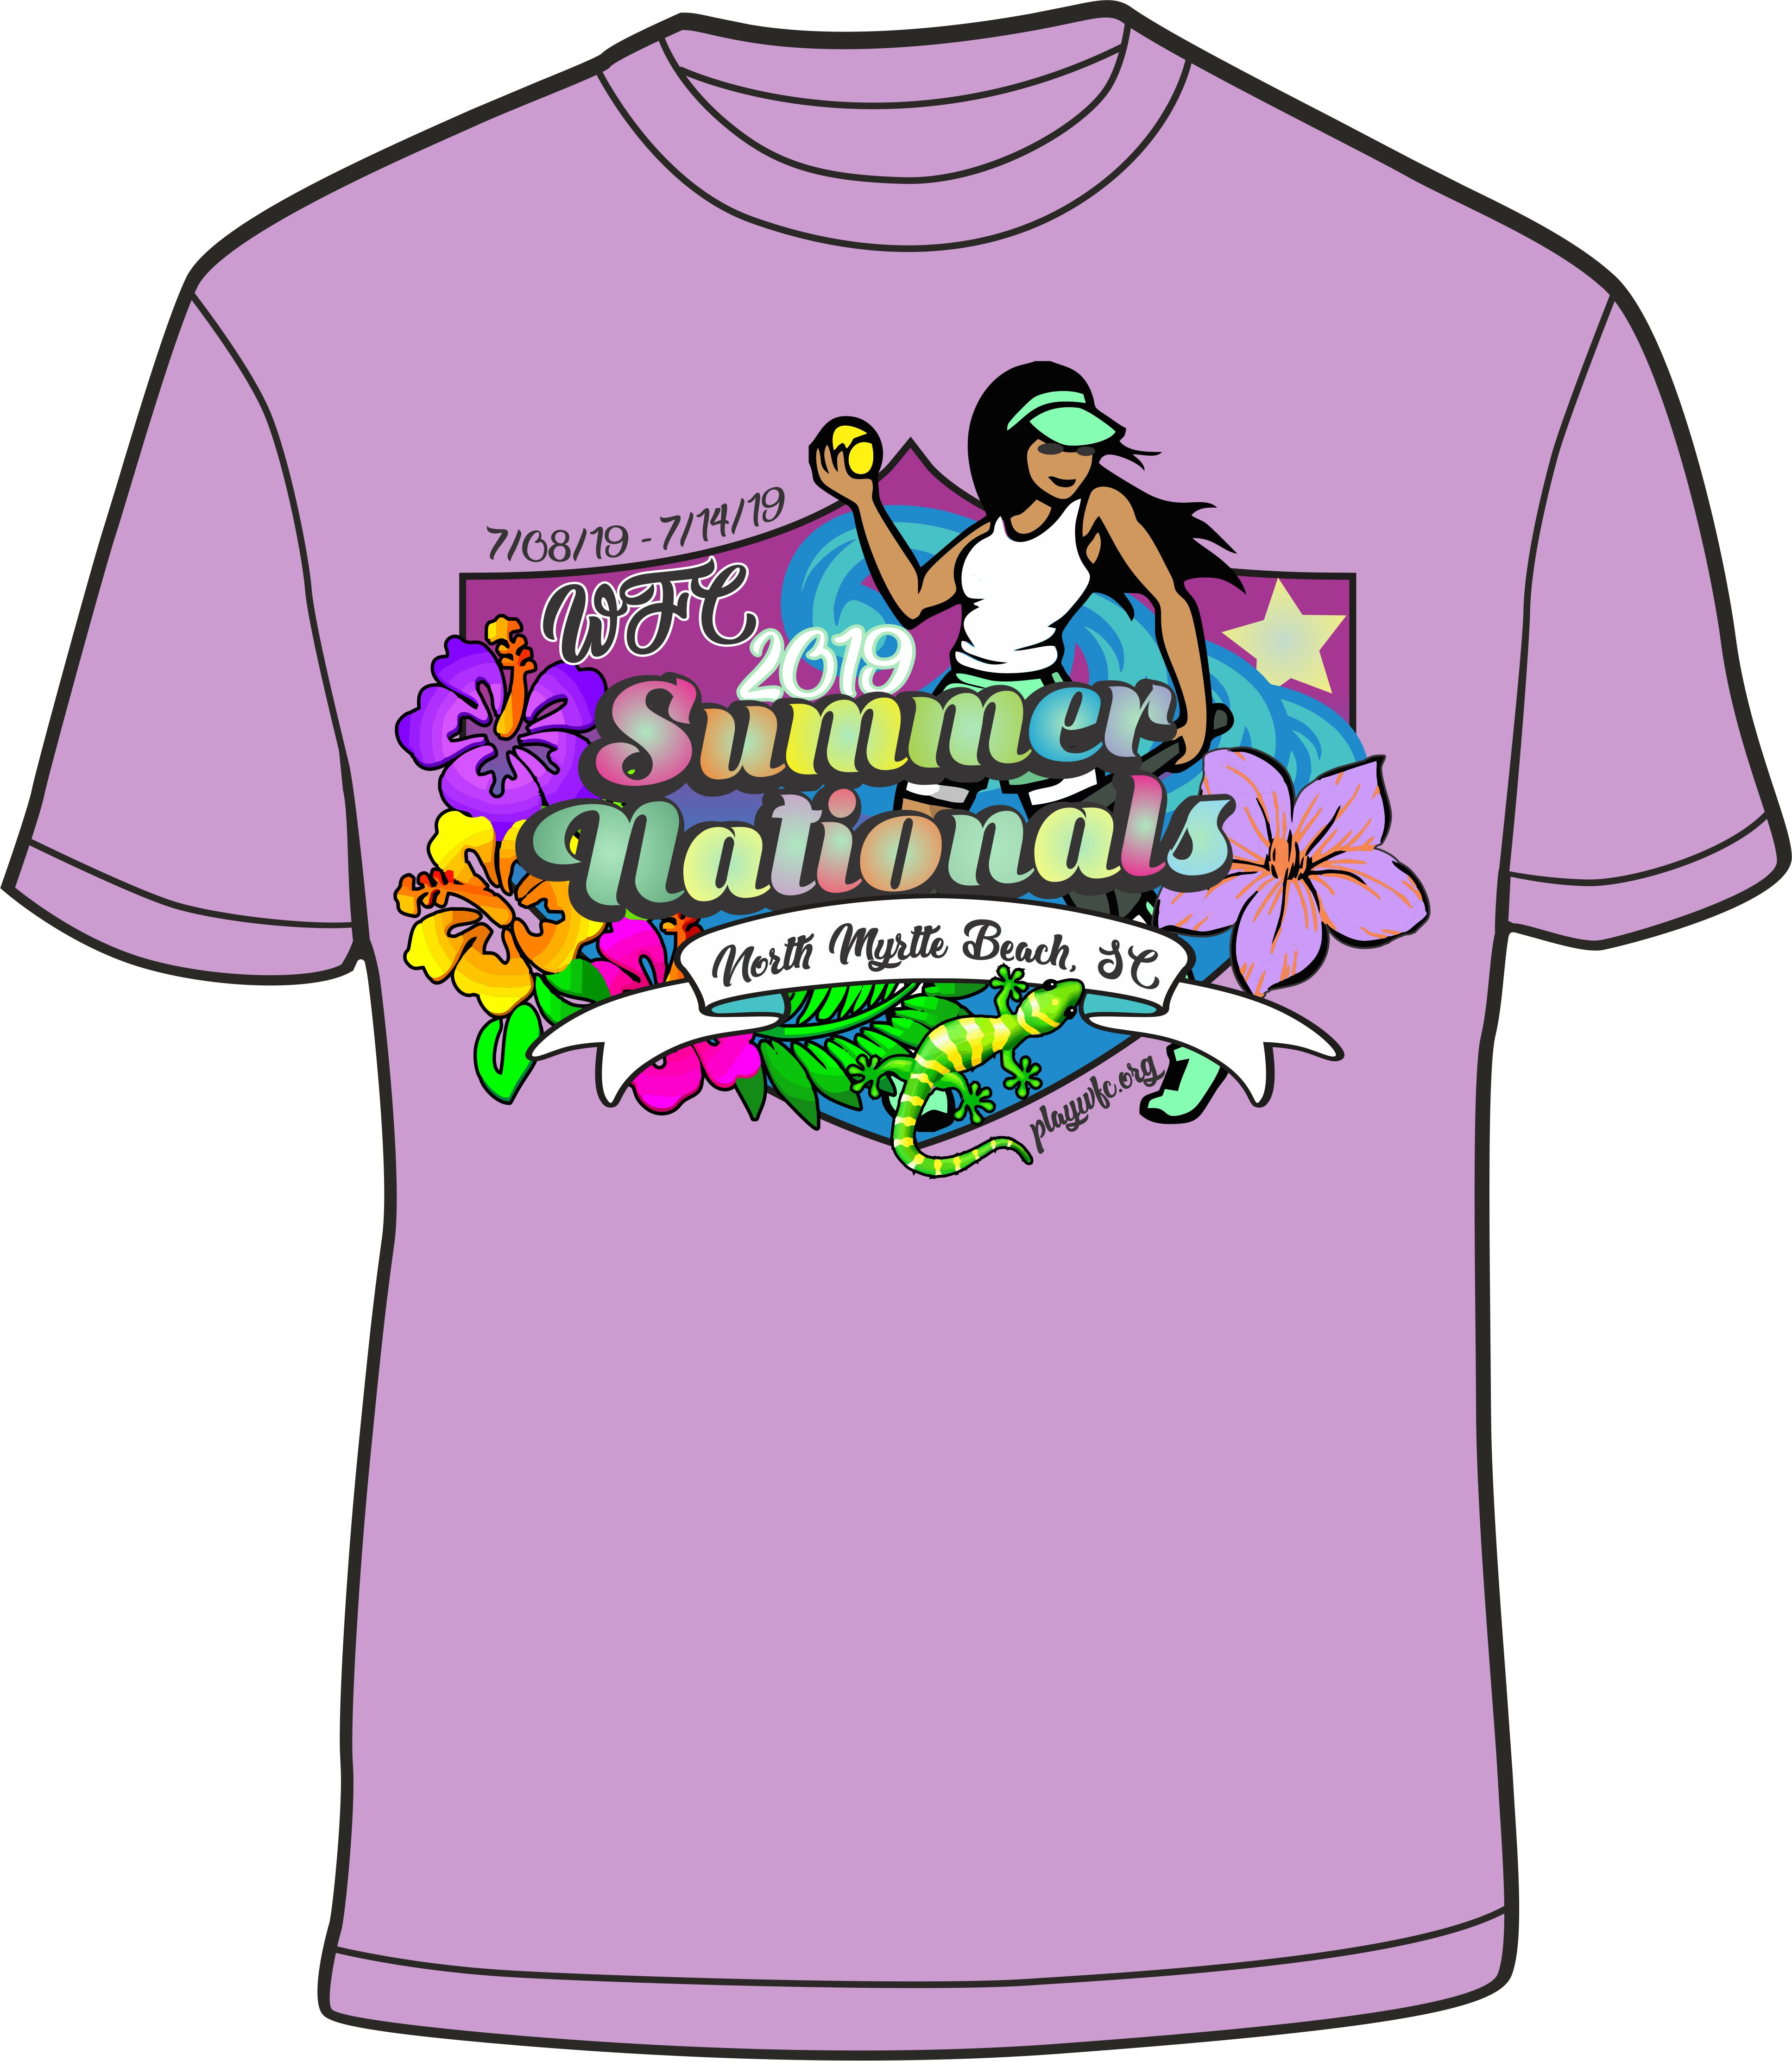 72907c82e43907 ... Tournament Shirts Today!    See DOCS tab for T-shirt Preorder Form